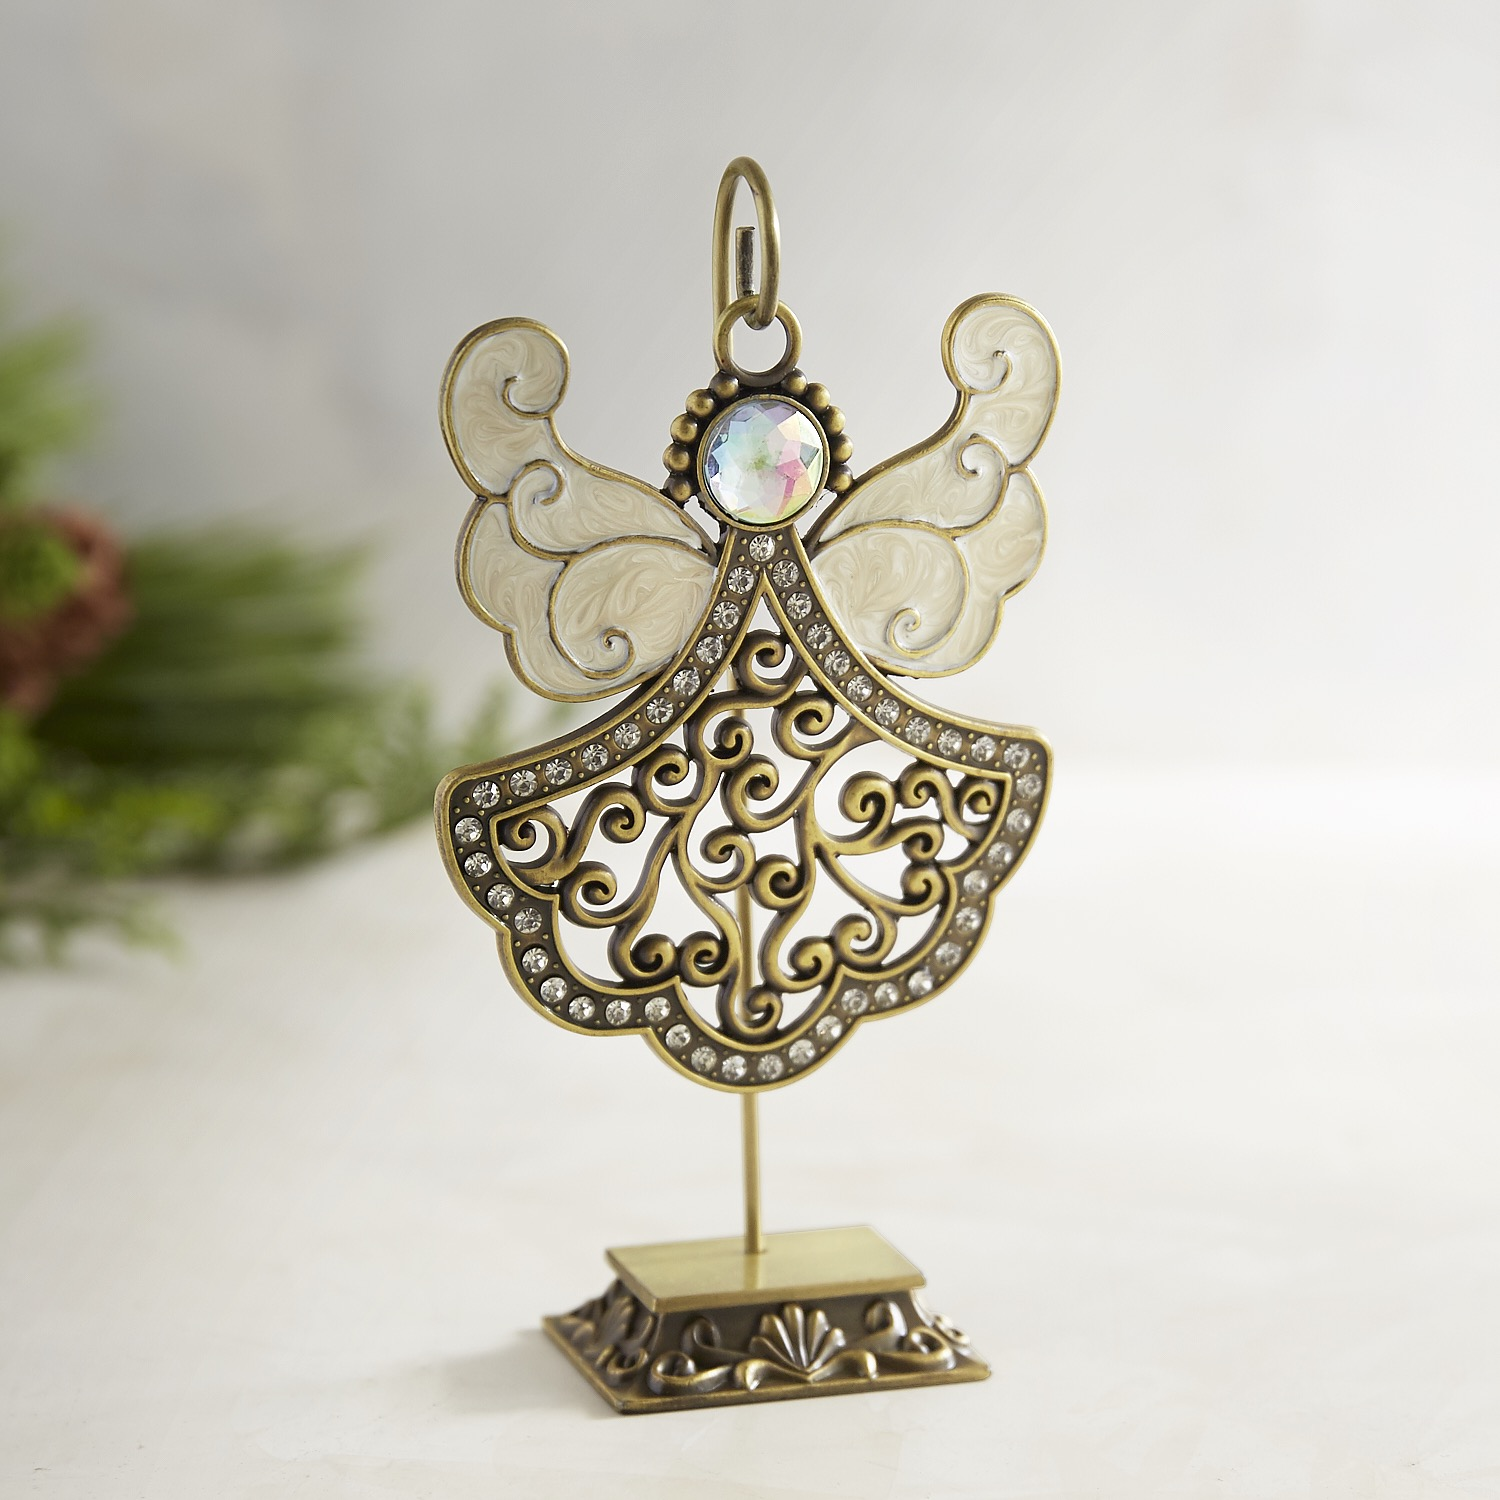 Angel Collectible with Stand